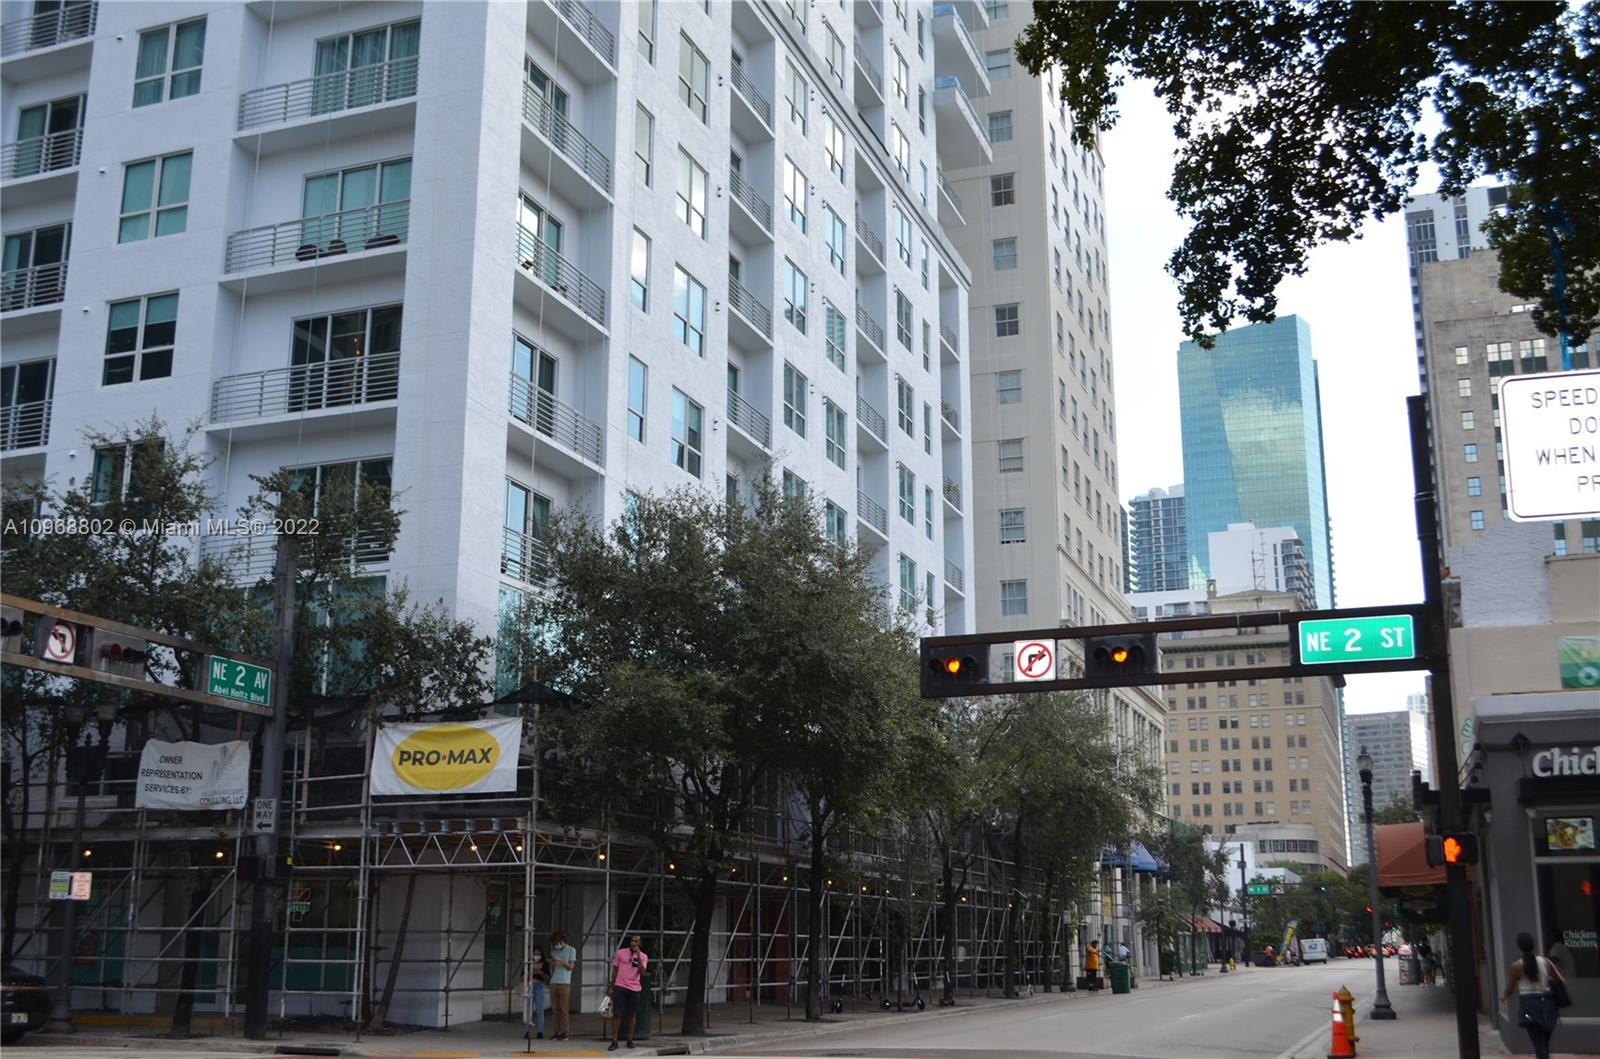 Spectacular Studio apartment at Loft II in the heart of Downtown Miami. Loft style, with amazing views of Brickell. The condo offers a bright space, with high ceilings, concrete floors, modern kitchen and bathroom. The layout of this condo offers tremendous privacy with no buildings obstructing the Miami views. This condo is great for investing. Located in the heart of Downtown Miami, three block from Brickell, minutes away South Beach, Coconut Grove, and Coral Gables, Wynwood, and two major hospitals. This condo has easy access to I-95, and walking distance to the Briteline. It also offers great amenities including two swimming pools (one roof pool), a gym, and a beautiful community room with a pool table. Association Budget is available upon request to listing agent.